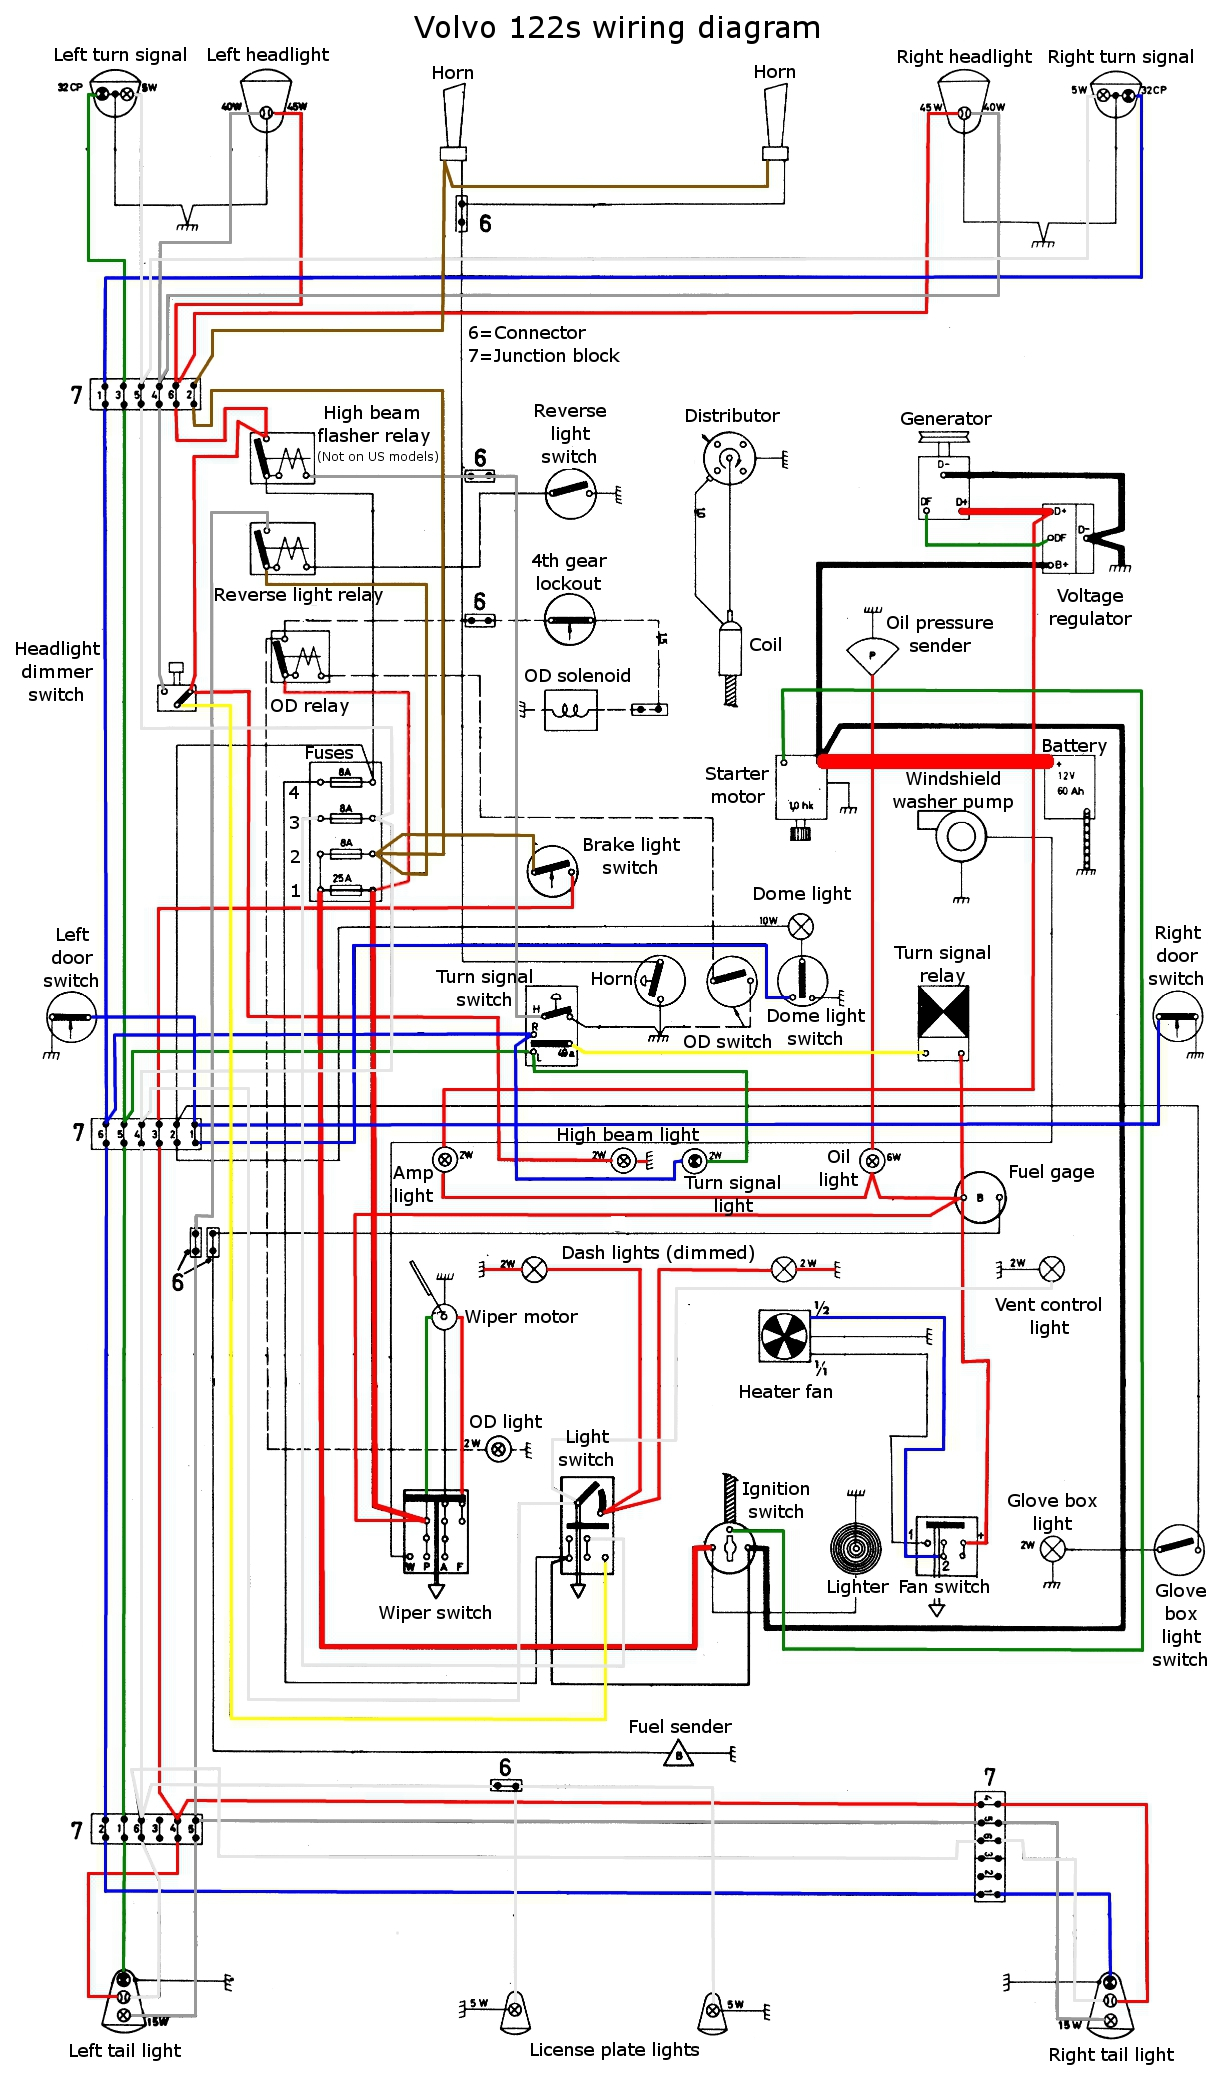 122 wiring diagram color wiring gremlins volvo xc70 wiring diagram at nearapp.co